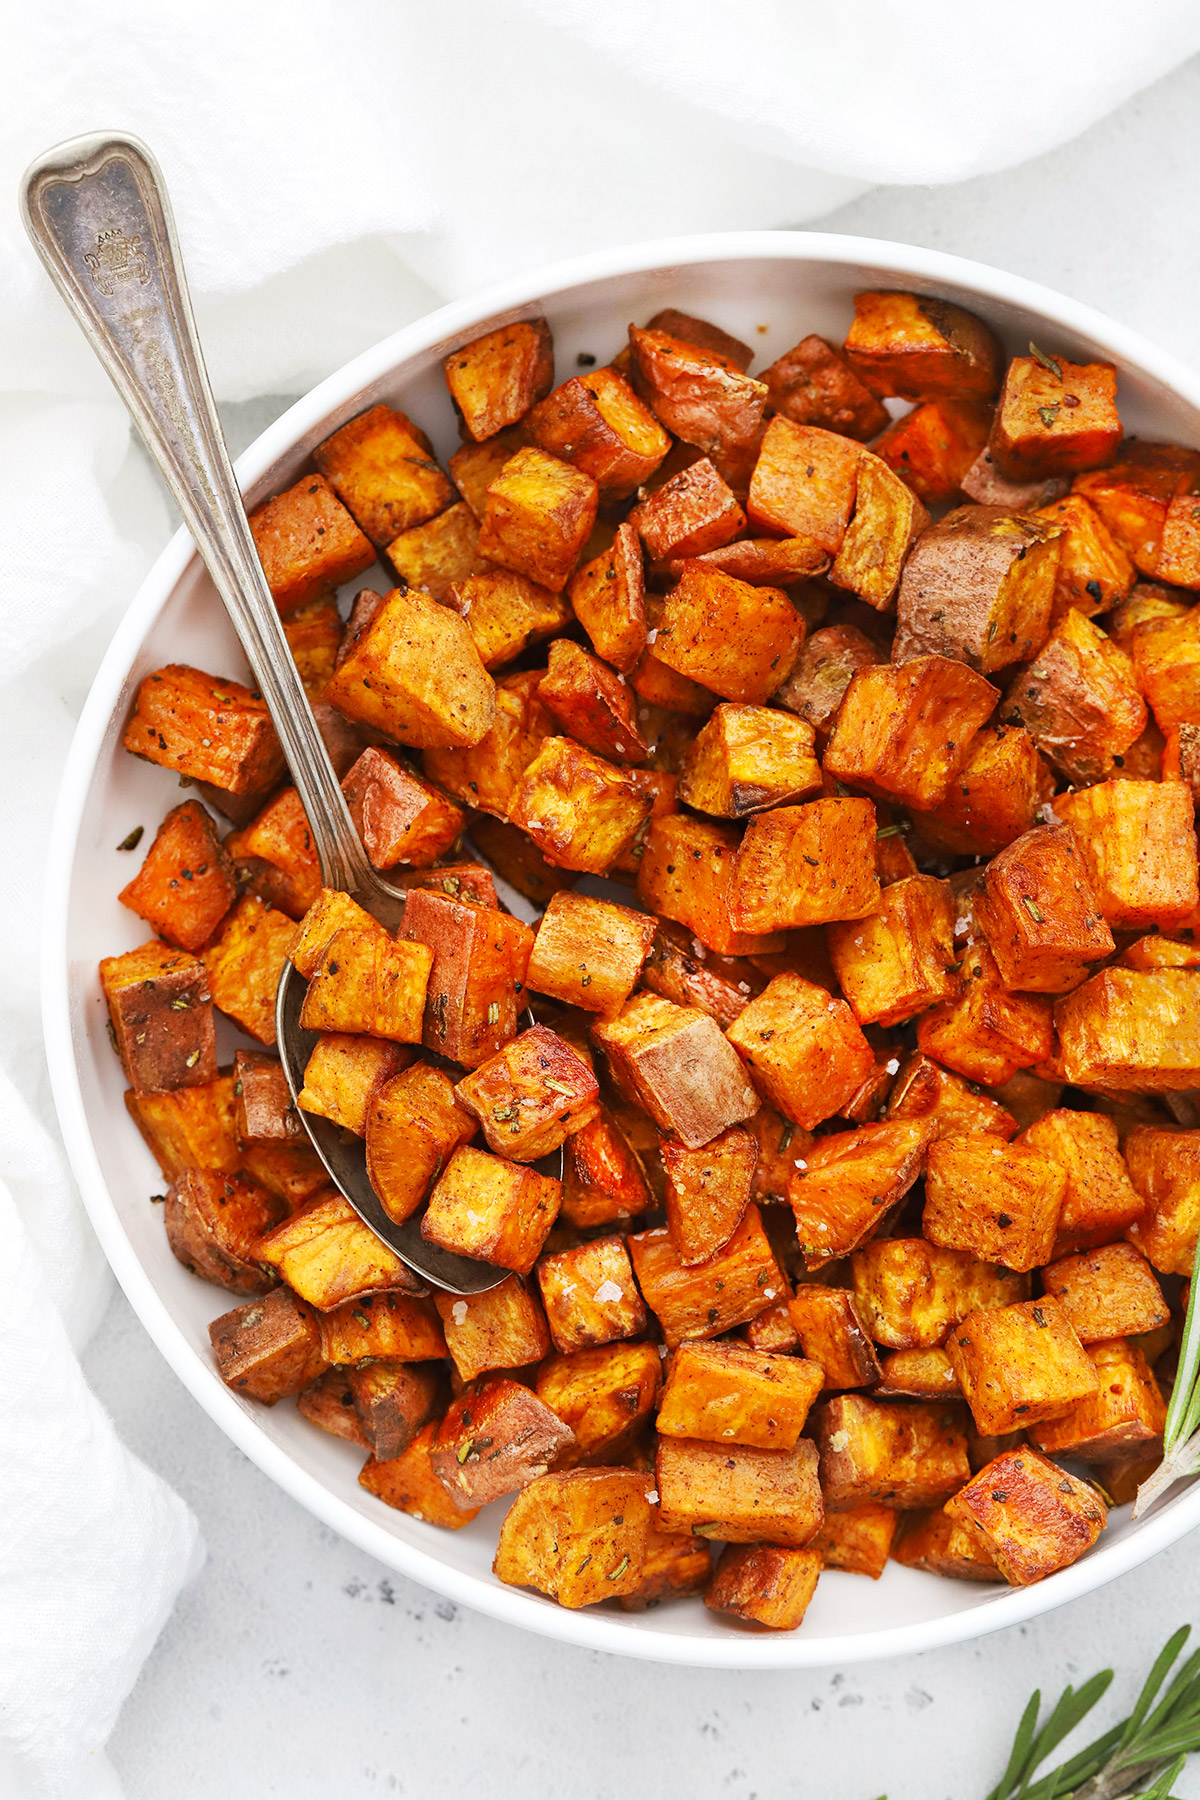 Overhead view of Cinnamon Rosemary Sweet Potatoes in a white bowl on a white background